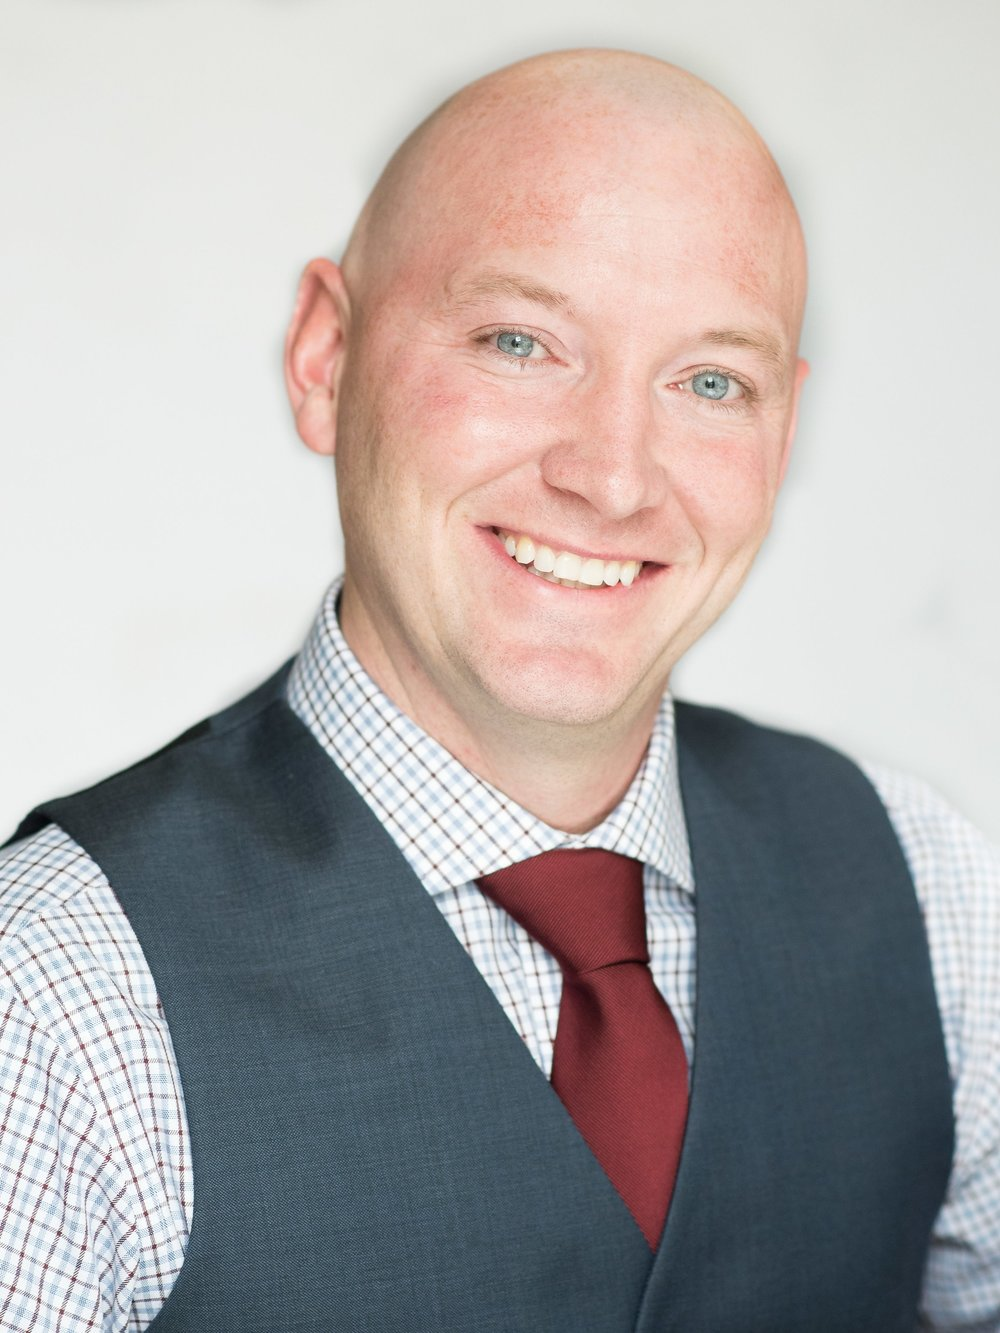 Jared Beuther,CIR,CPC <i>Vice President of Recruiting</i>